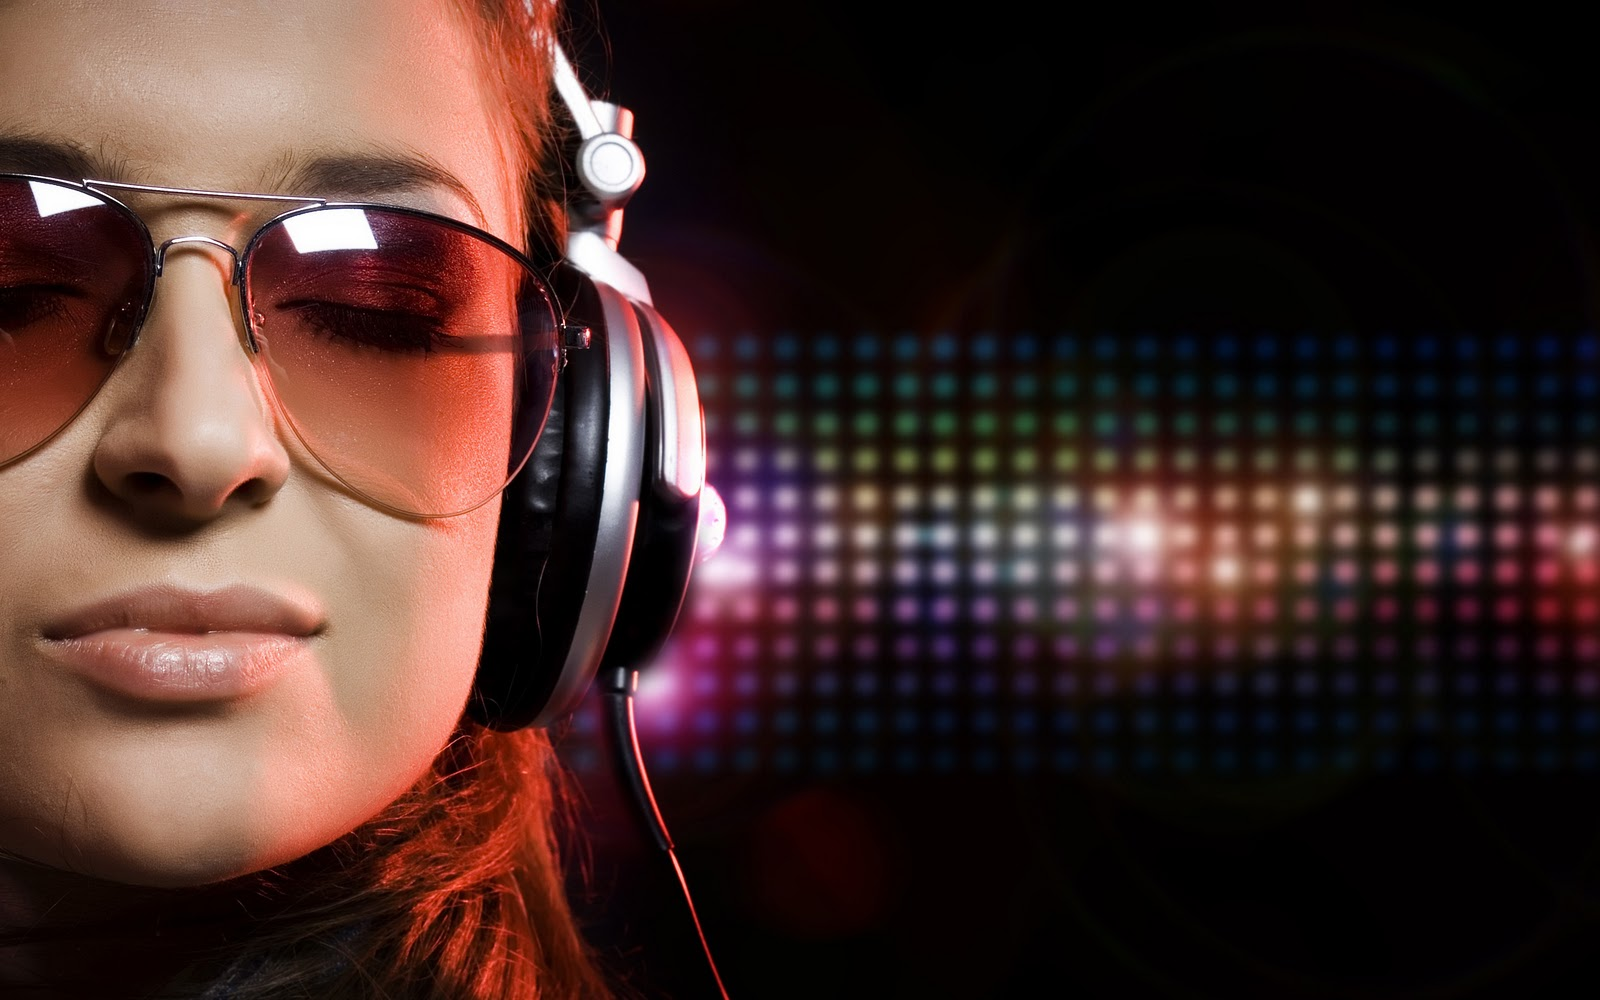 http://1.bp.blogspot.com/-82Ybkx0uEOQ/Tyoh9QYWXTI/AAAAAAAAAO0/SF-XL1kvhgM/s1600/Wallpaper-face-girl-woman-music-headphones2.jpg